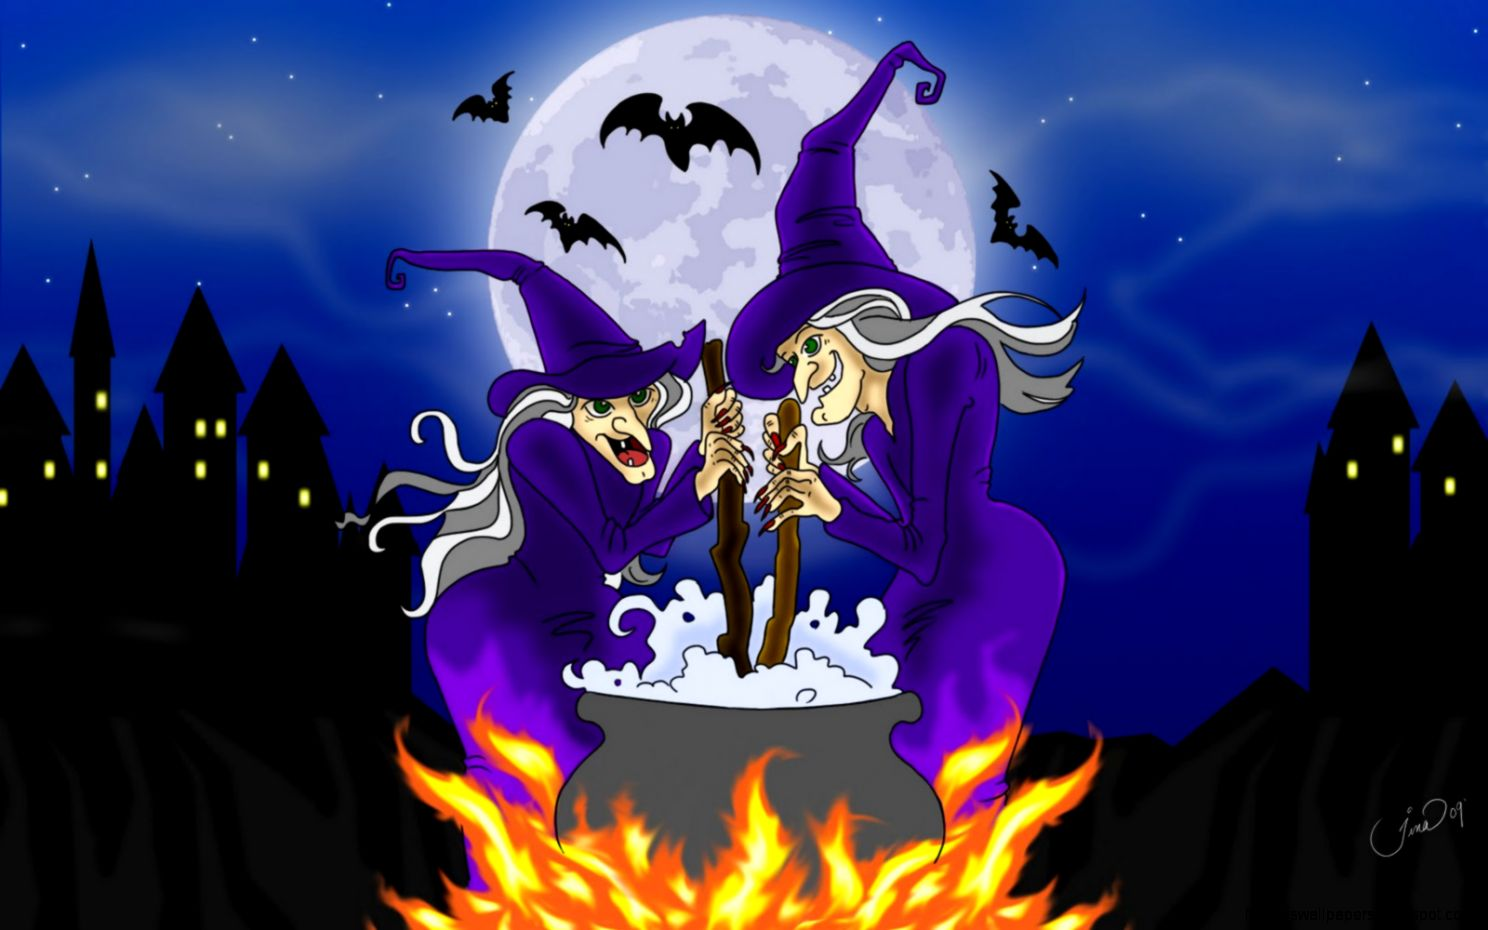 Download halloween wallpaper screensavers gallery - Scary halloween screensavers animated ...